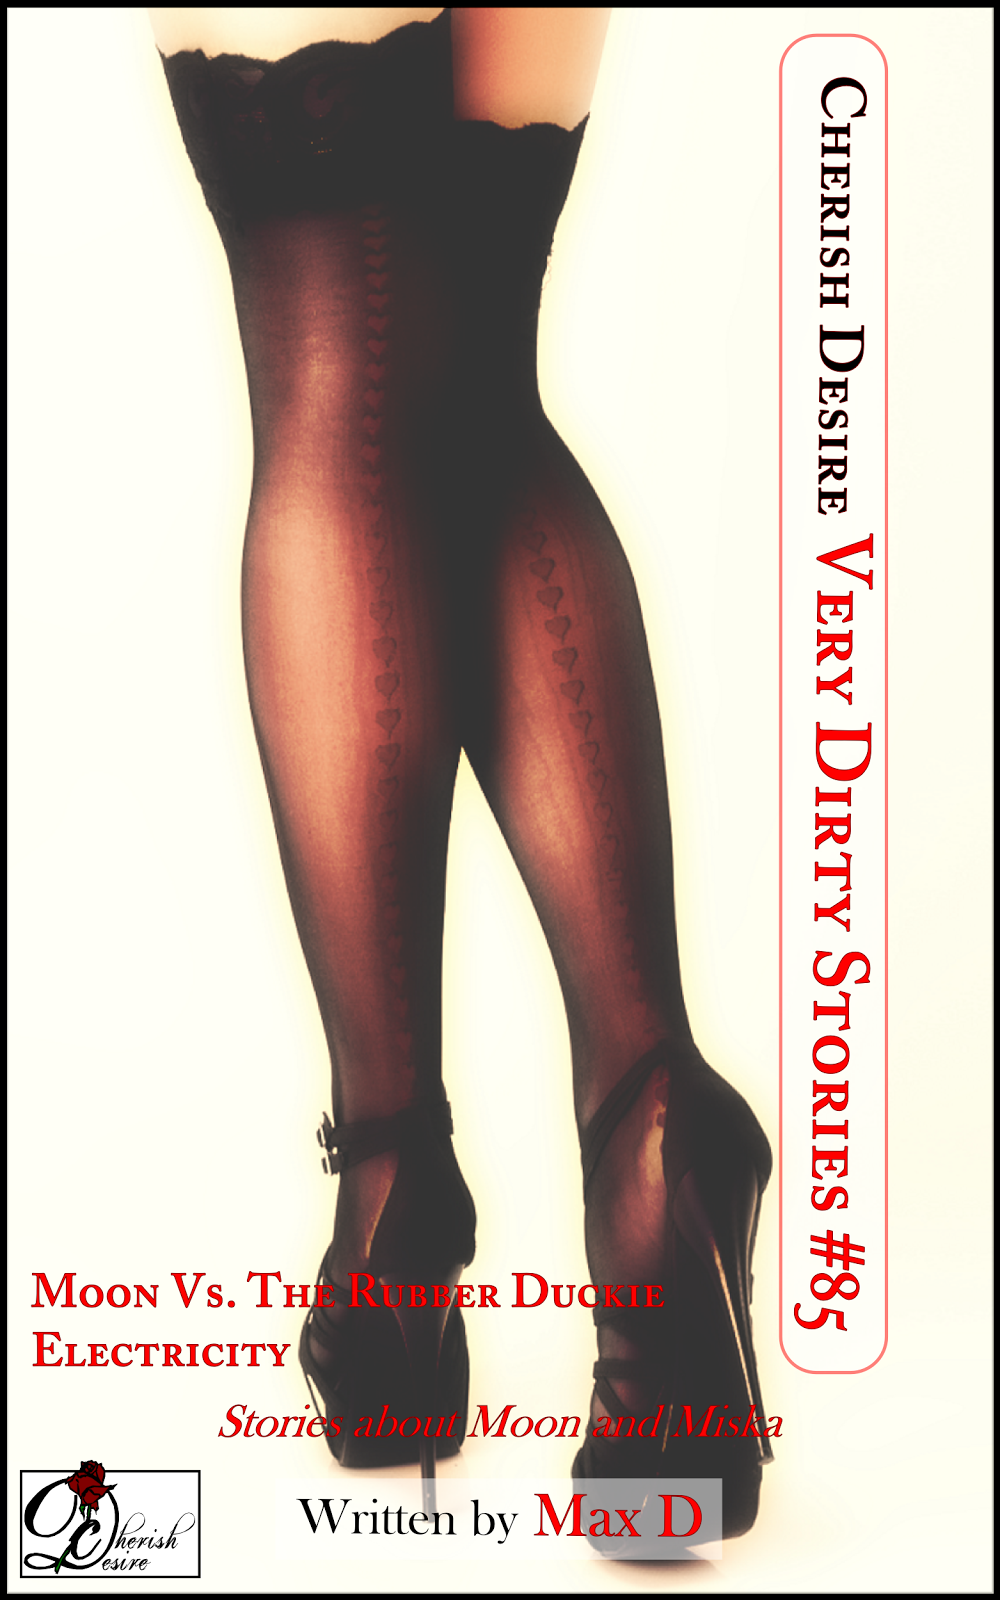 Cherish Desire: Very Dirty Stories #85, Max D, erotica